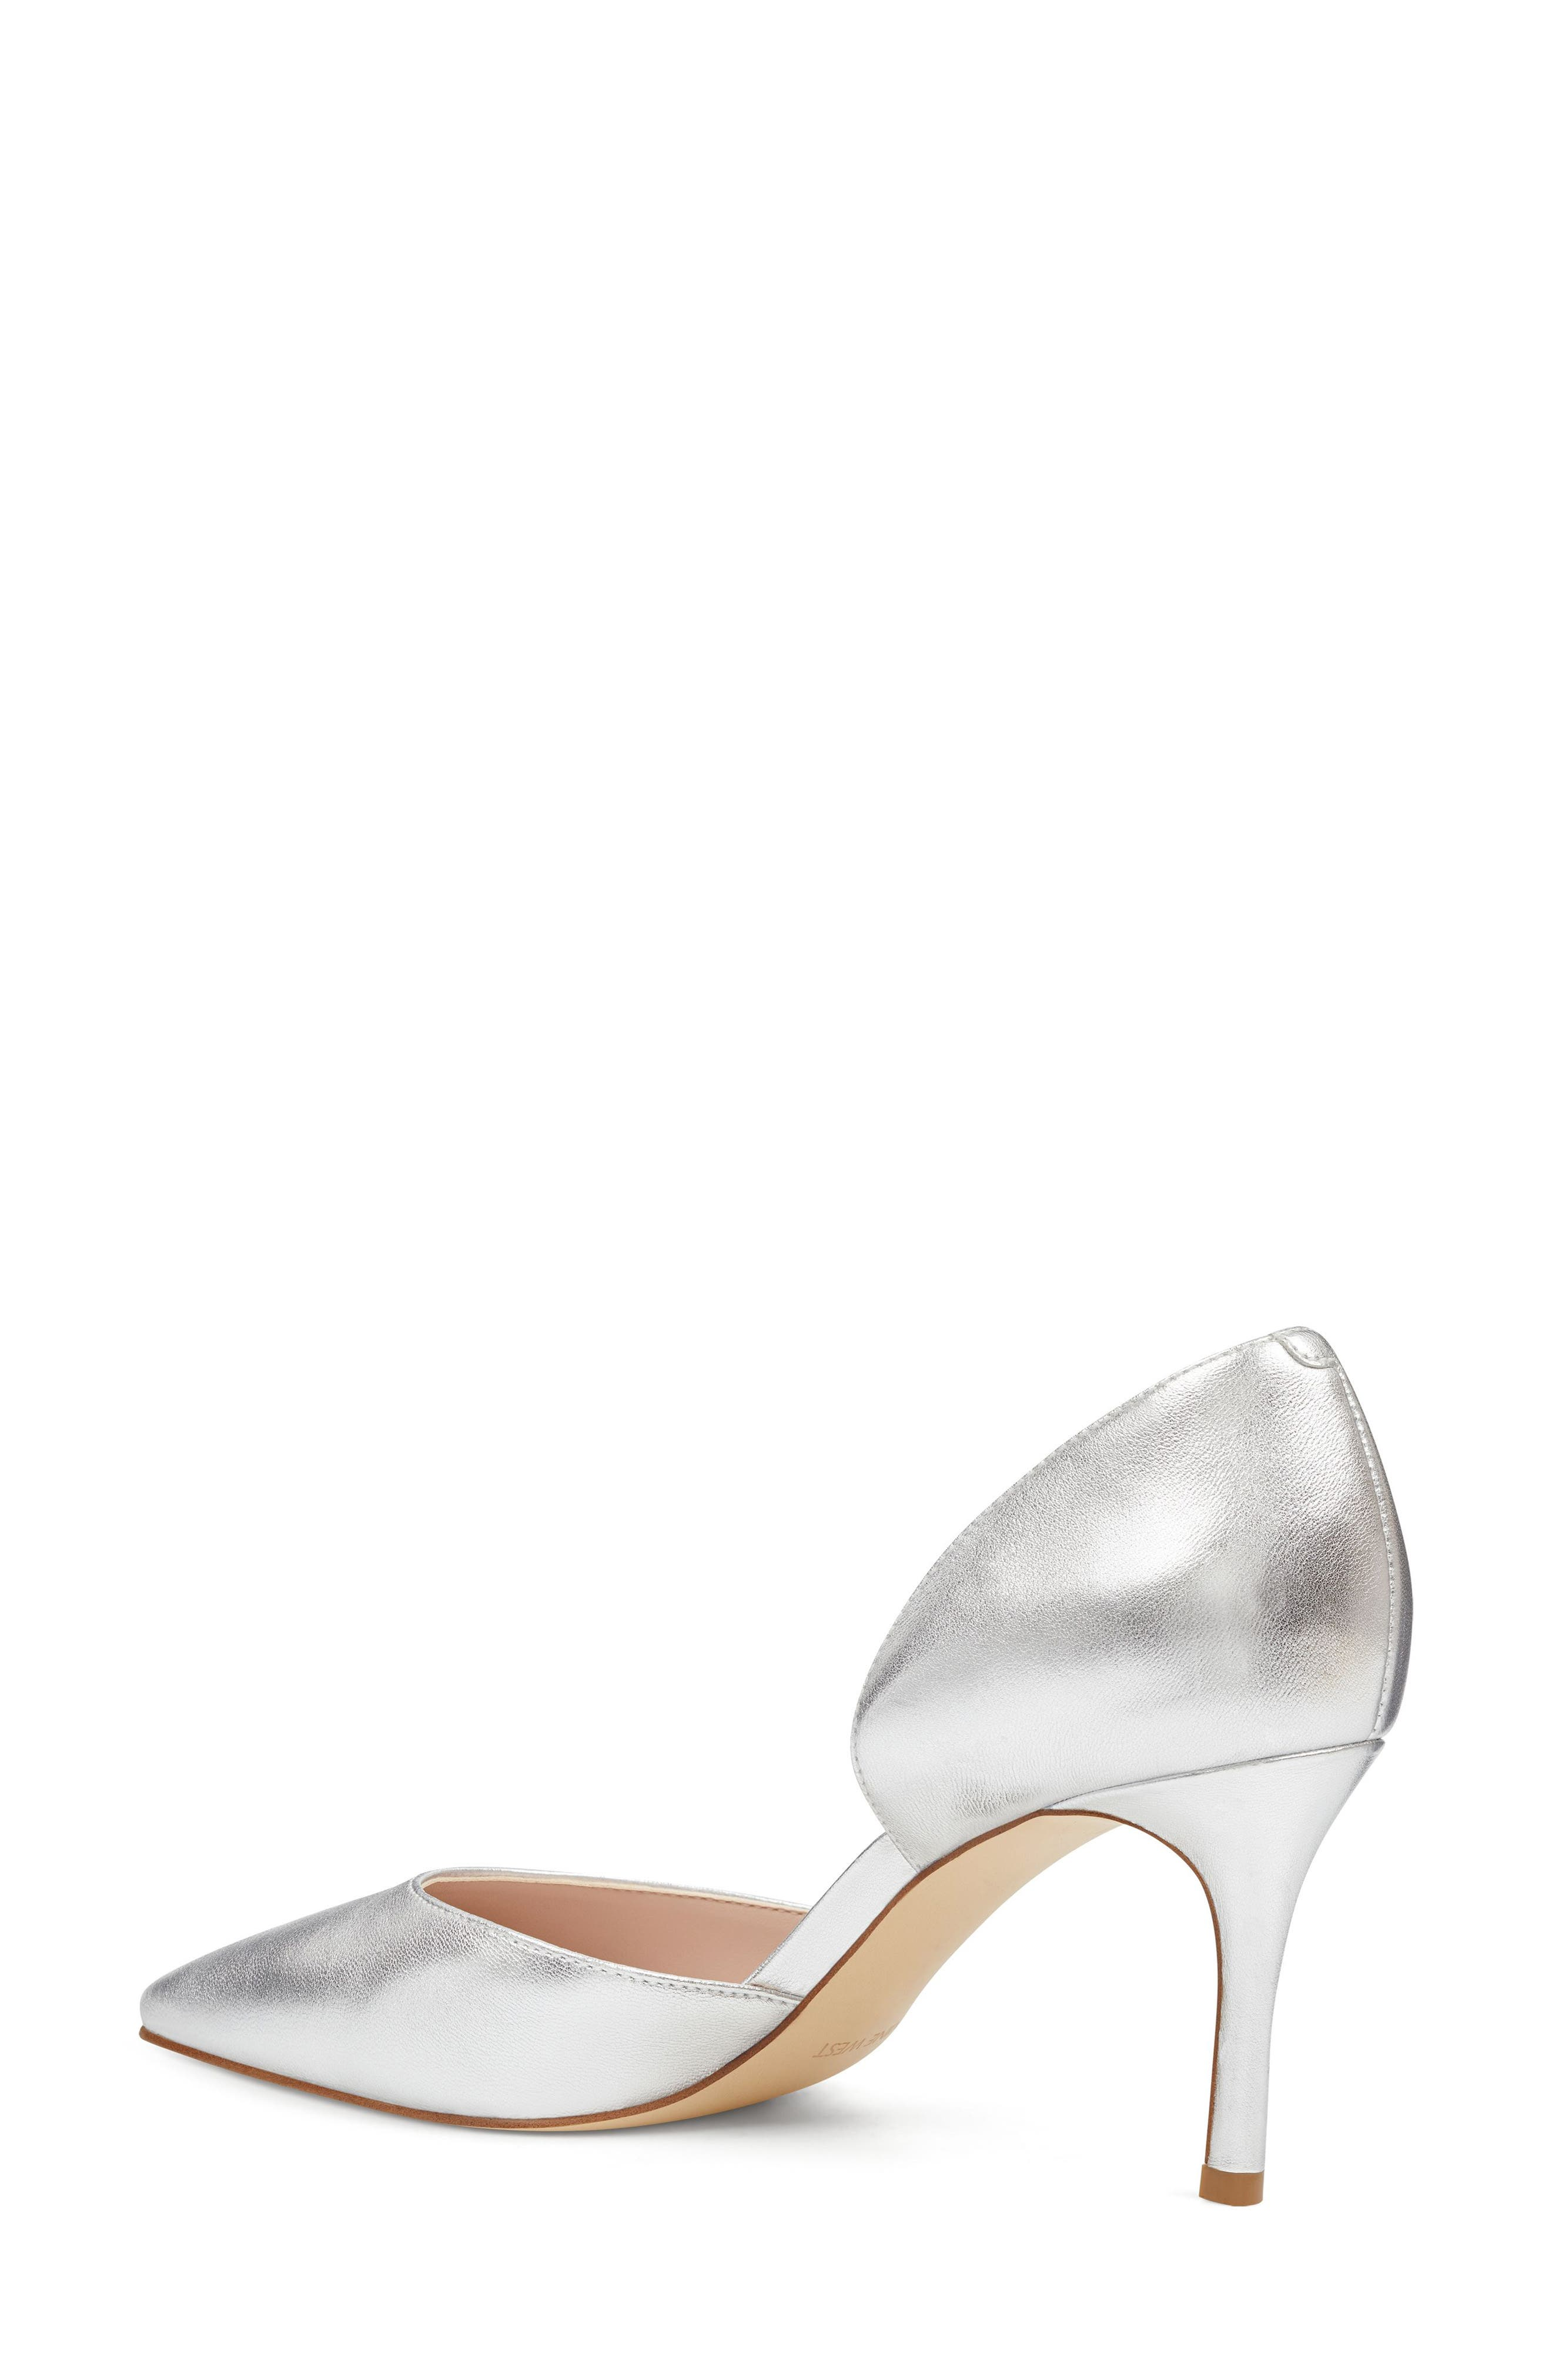 Mossiel Open Sided Pump,                             Alternate thumbnail 2, color,                             Silver